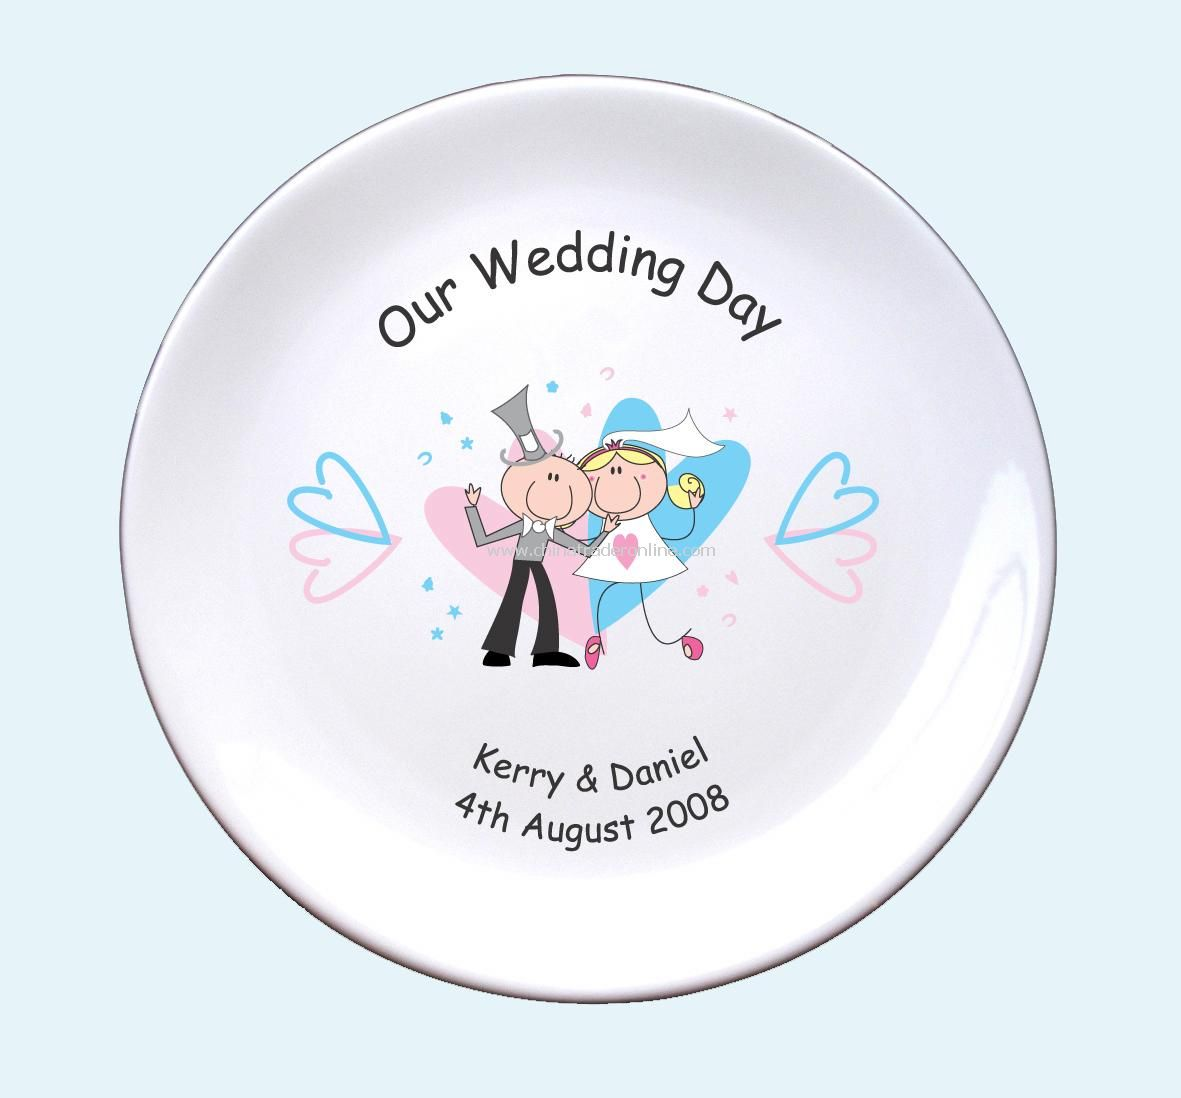 Pink & Blue Hearts Wedding Plate from China